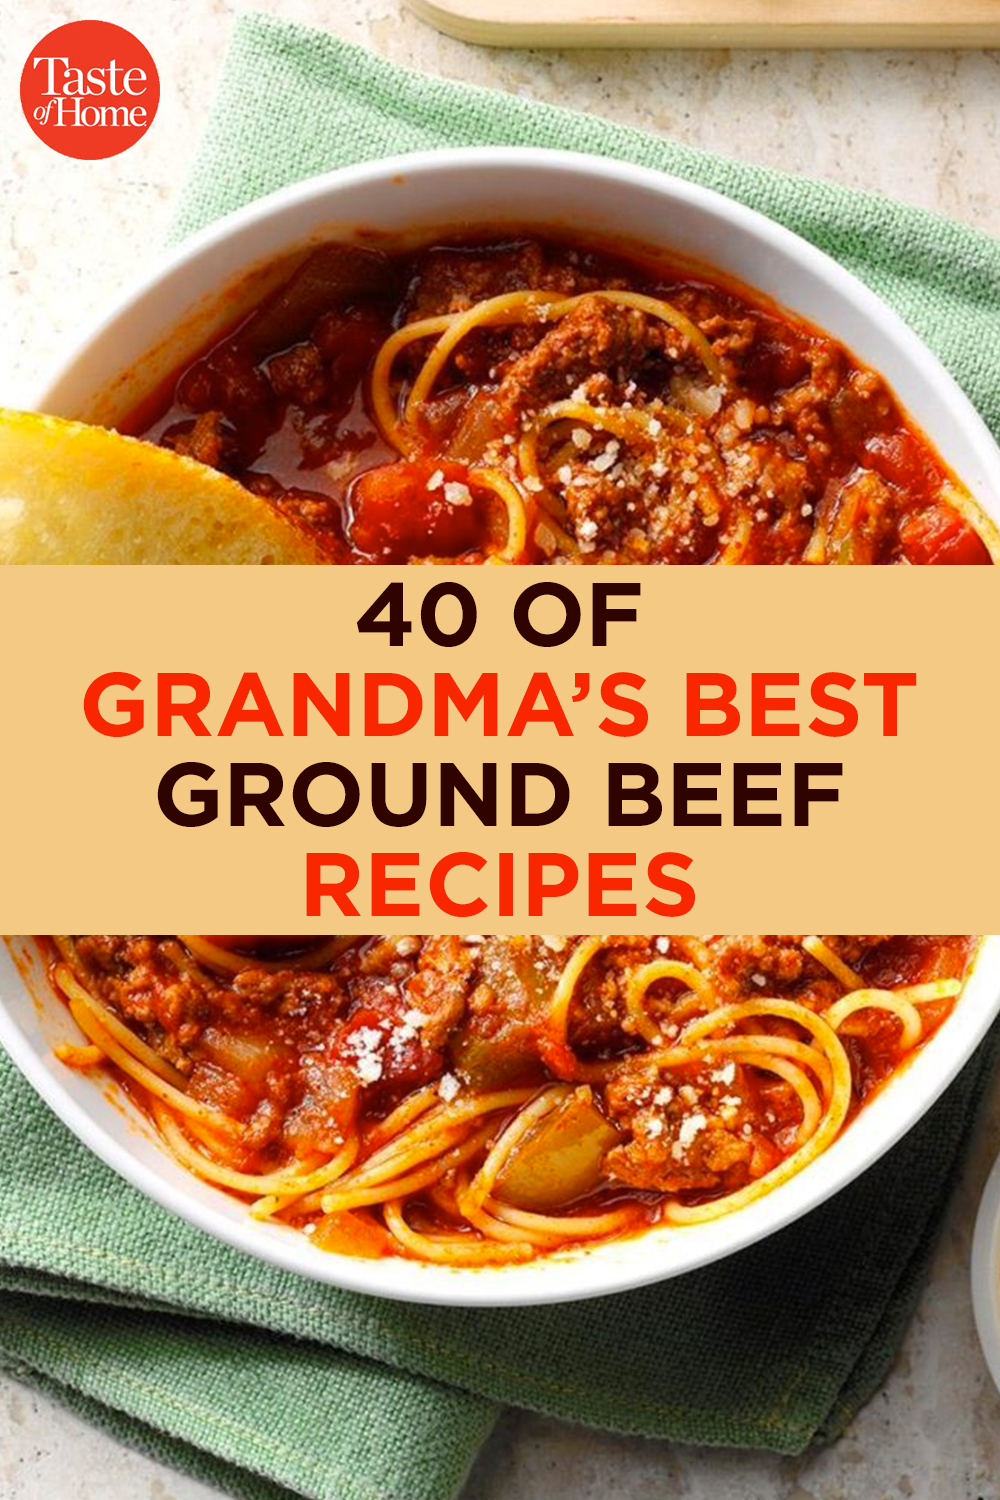 50 Of Grandma S Best Ground Beef Recipes Best Ground Beef Recipes Beef Recipes For Dinner Ground Beef Recipes For Dinner